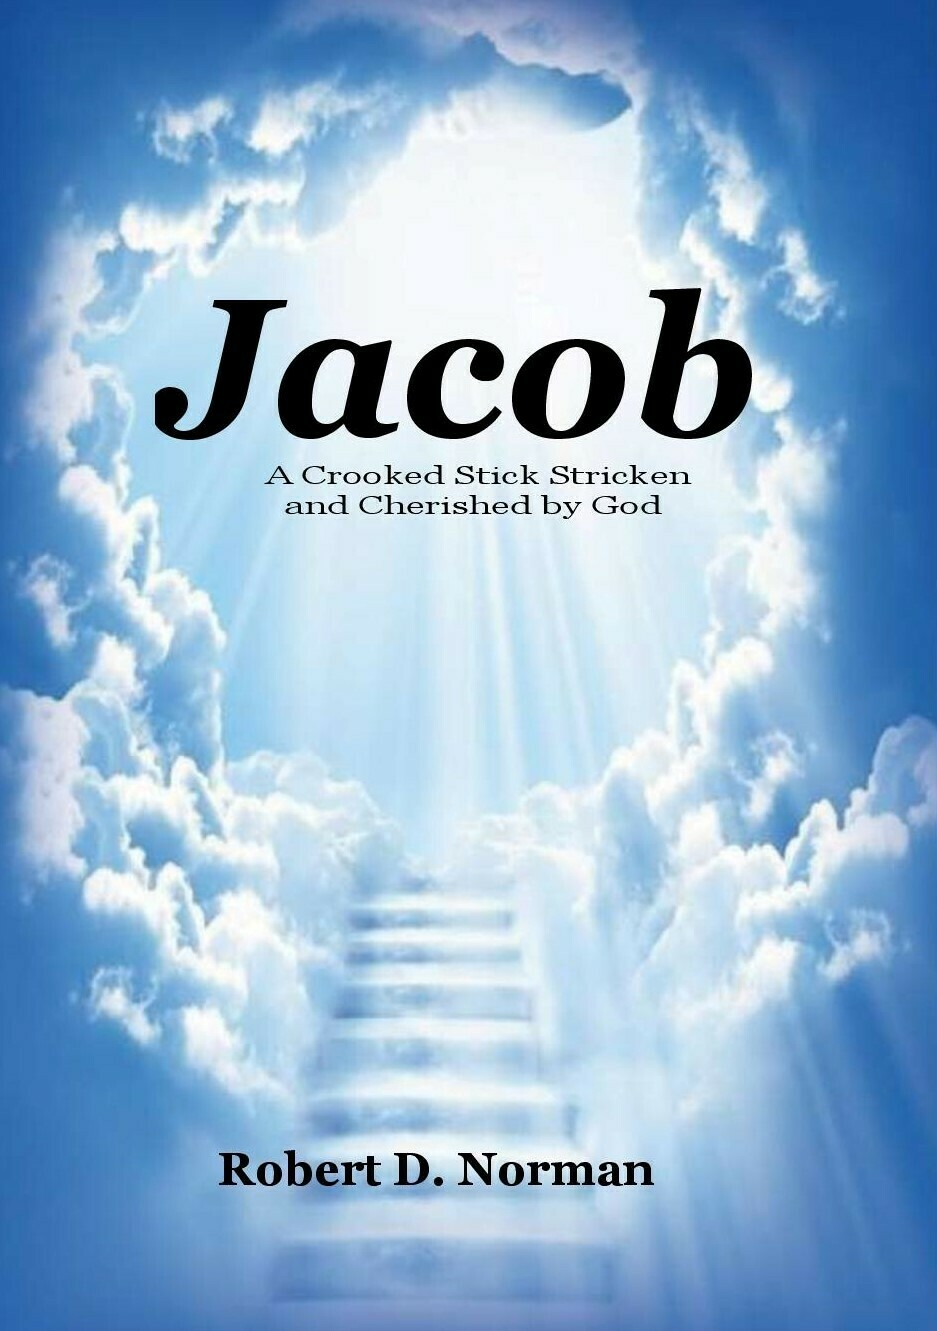 Jacob: A Crooked Stick Stricken and Cherished by God by Robert D. Norman (Soft-Cover & E-Book)